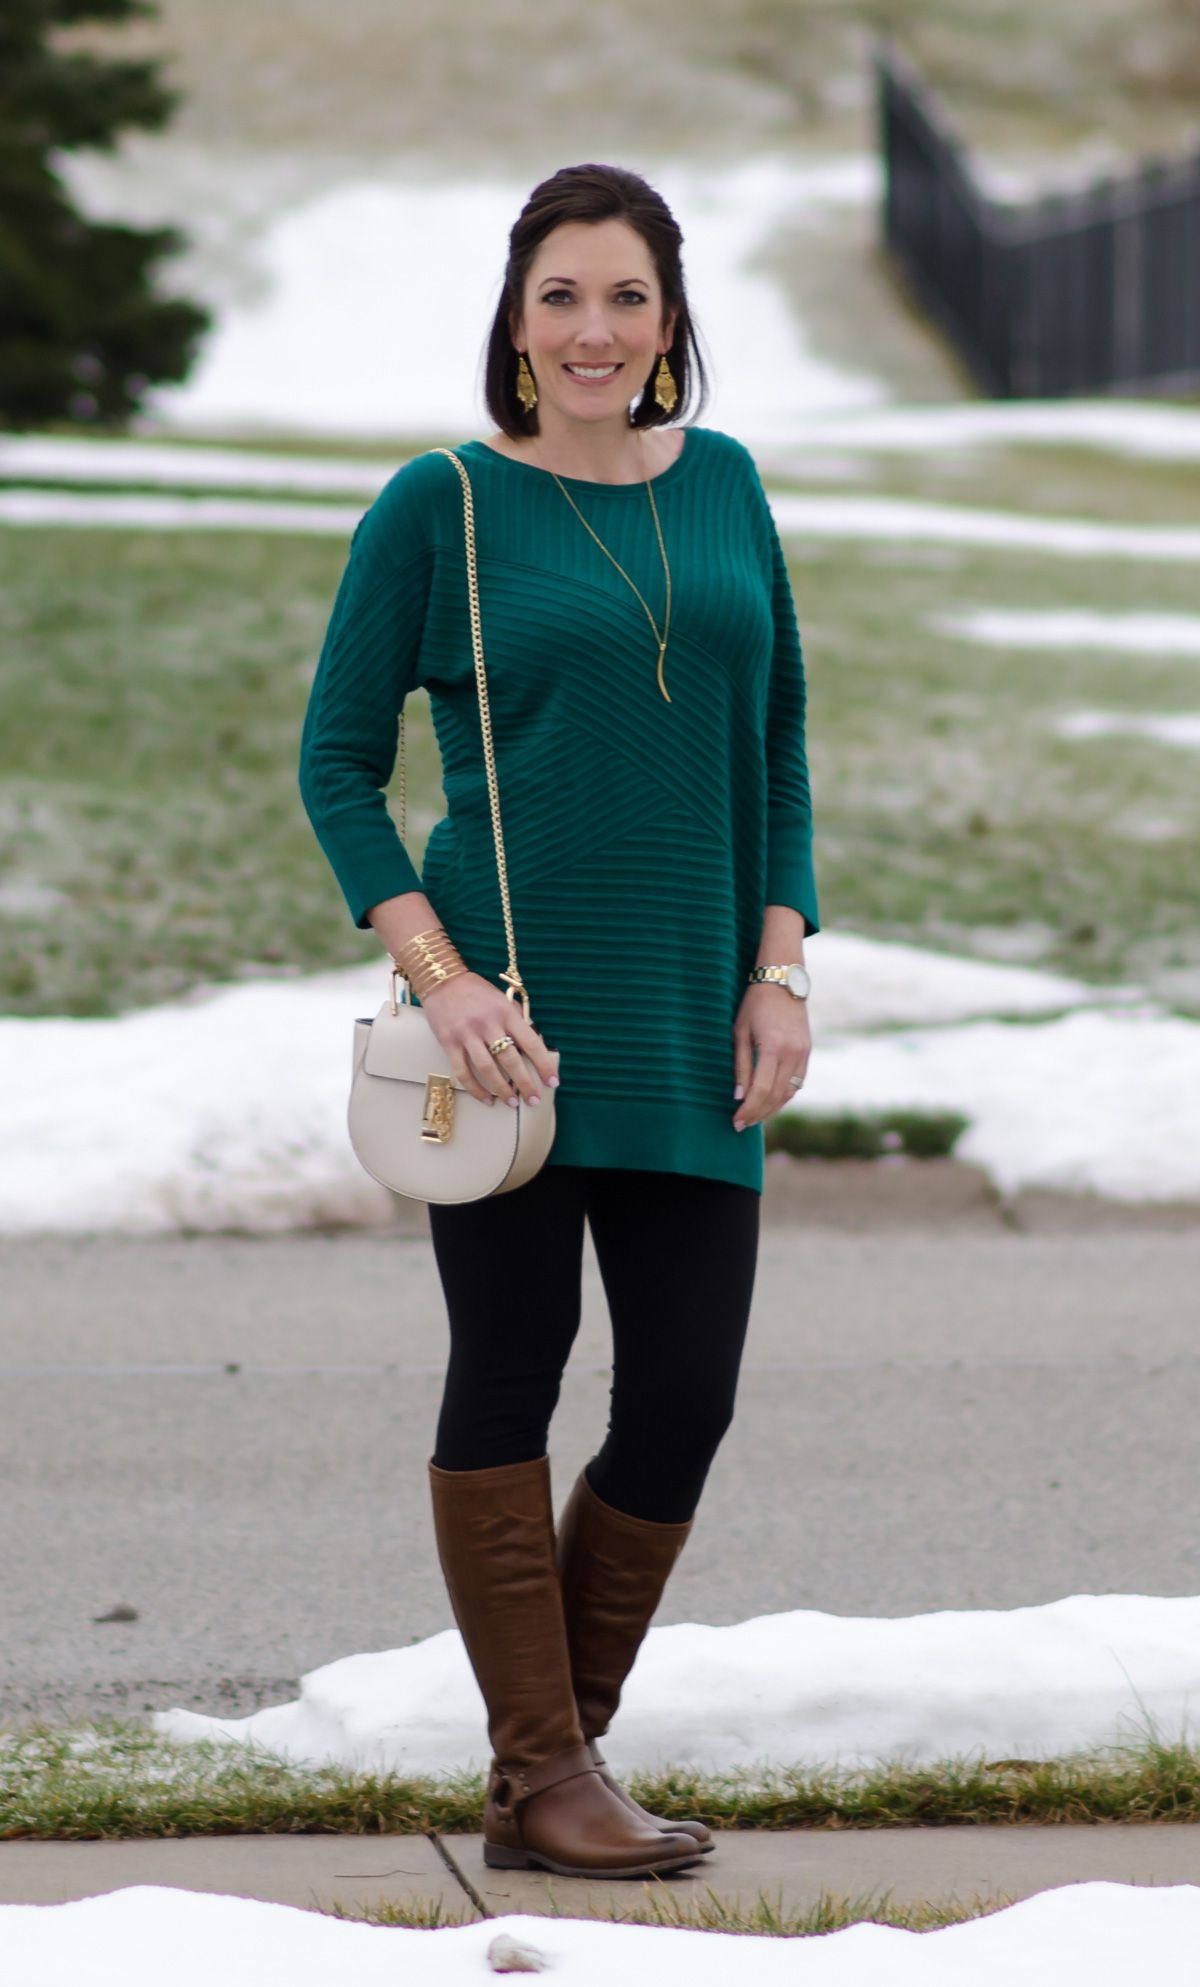 How to black wear boots with leggings recommendations dress for spring in 2019